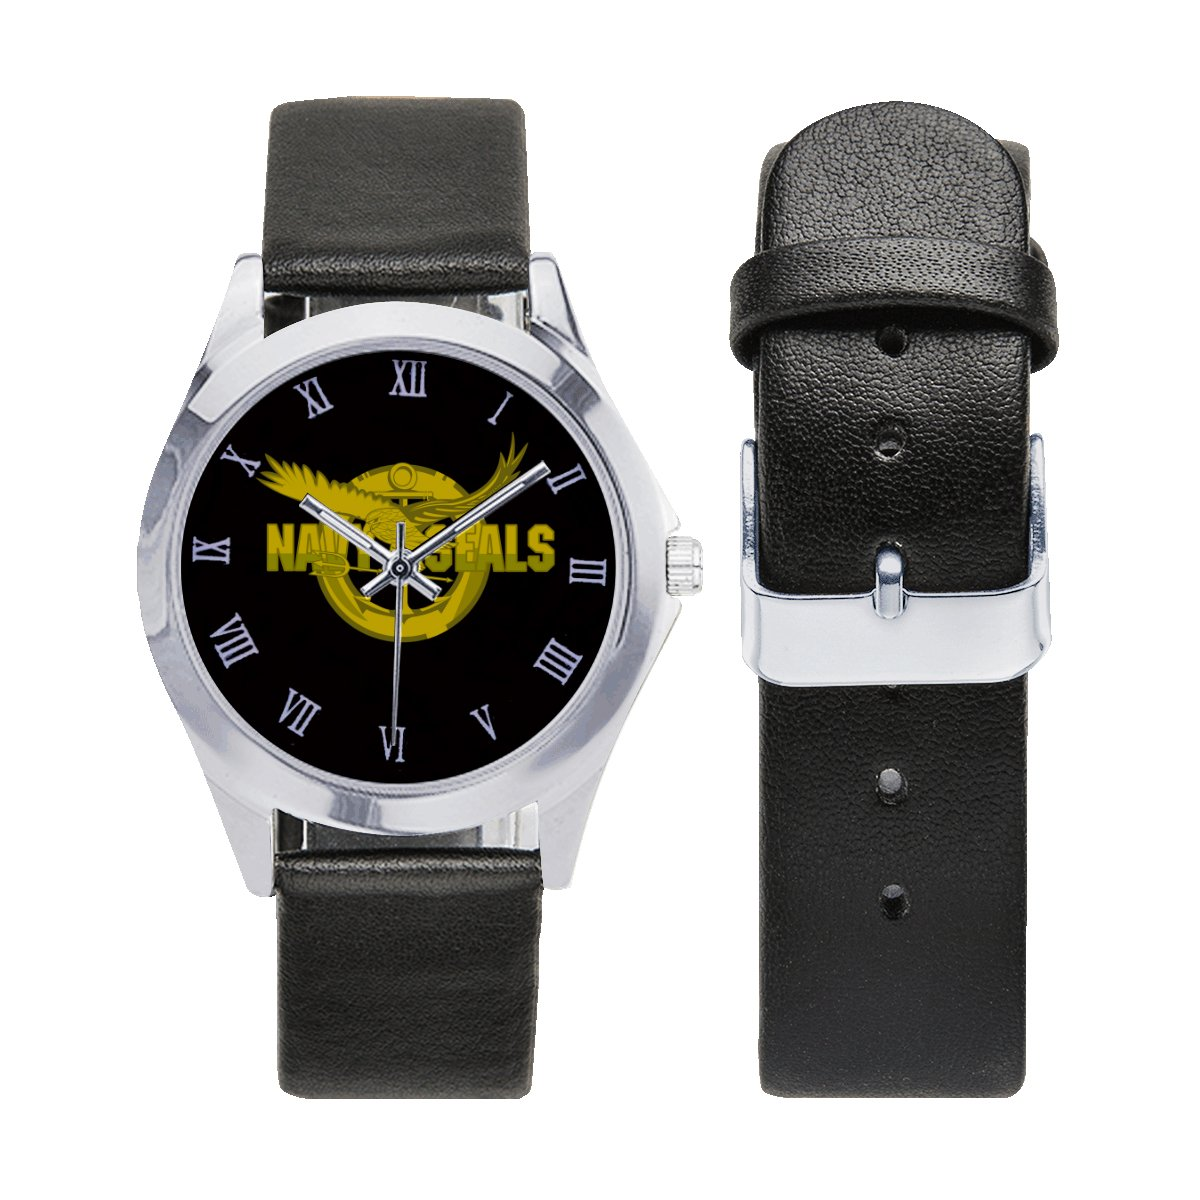 Navy Seals US logo Watches Leather Strap Watch Wrist Watches a perfect accessory